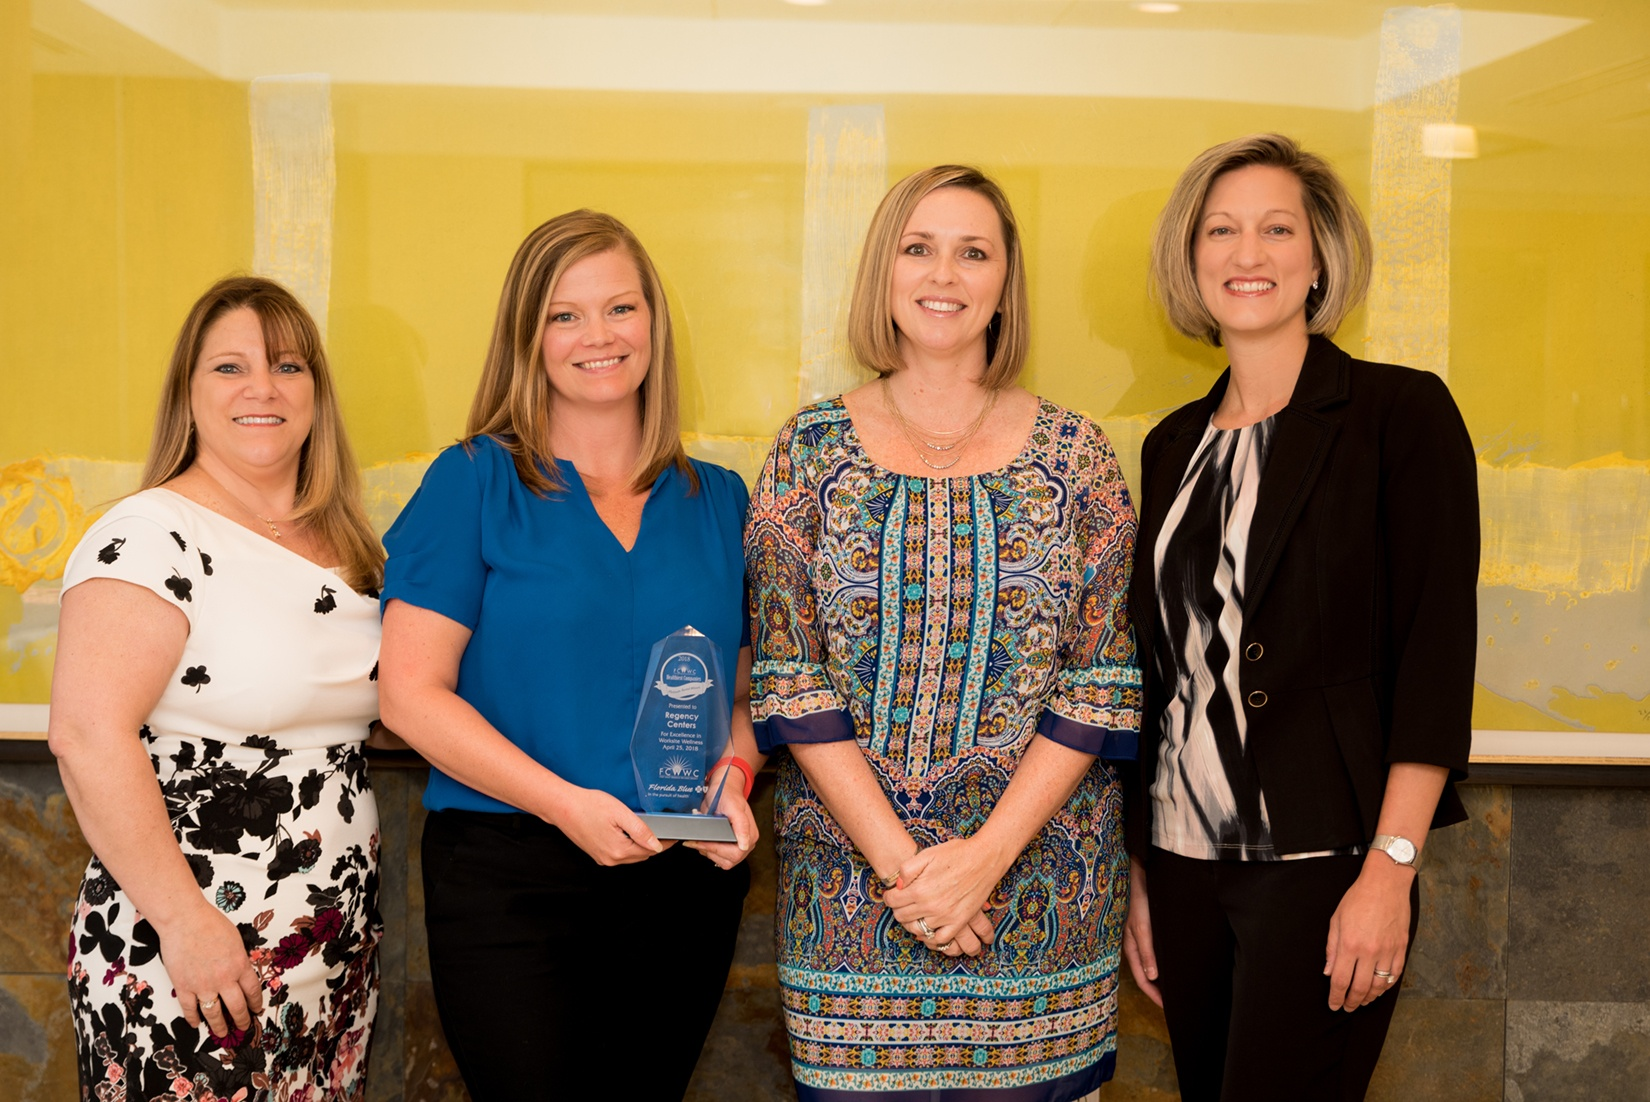 HR partners (L to R): Cathy Antonucci, Reese Dowell, Amy D'Olimpio, Jamie Conroy